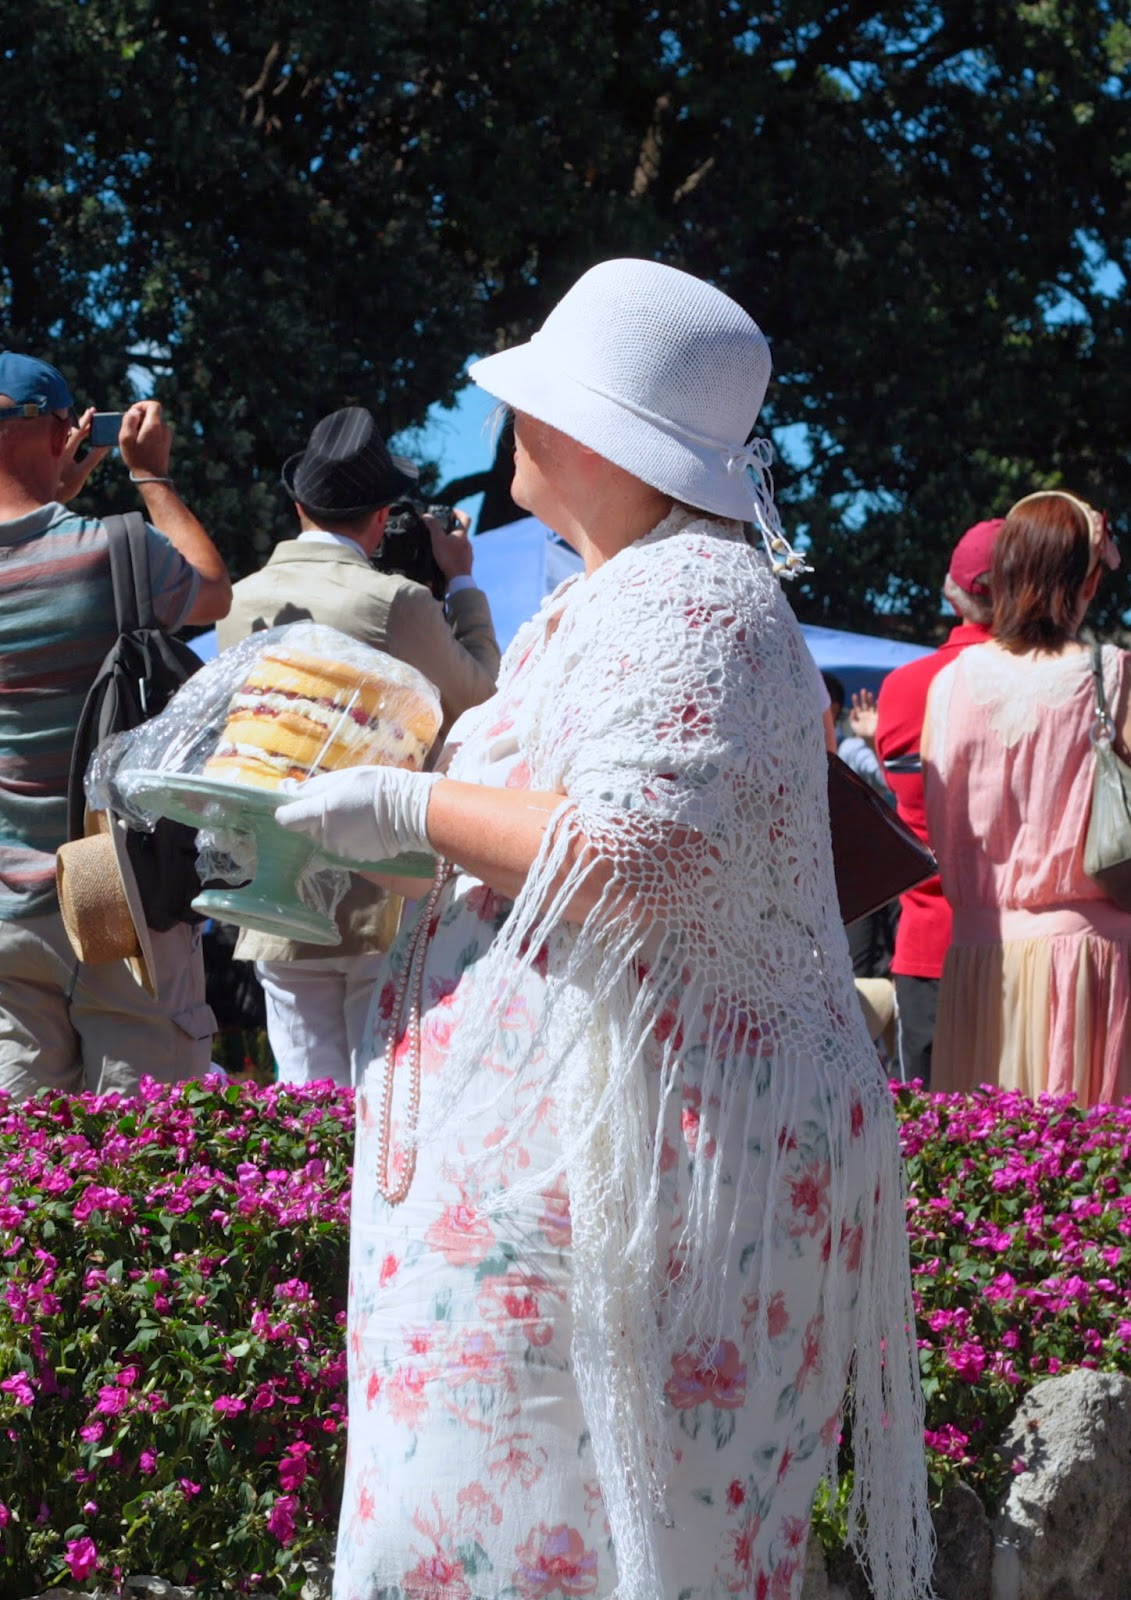 Woman in a cloche hat and crocheted shawl carries an enormous cake.